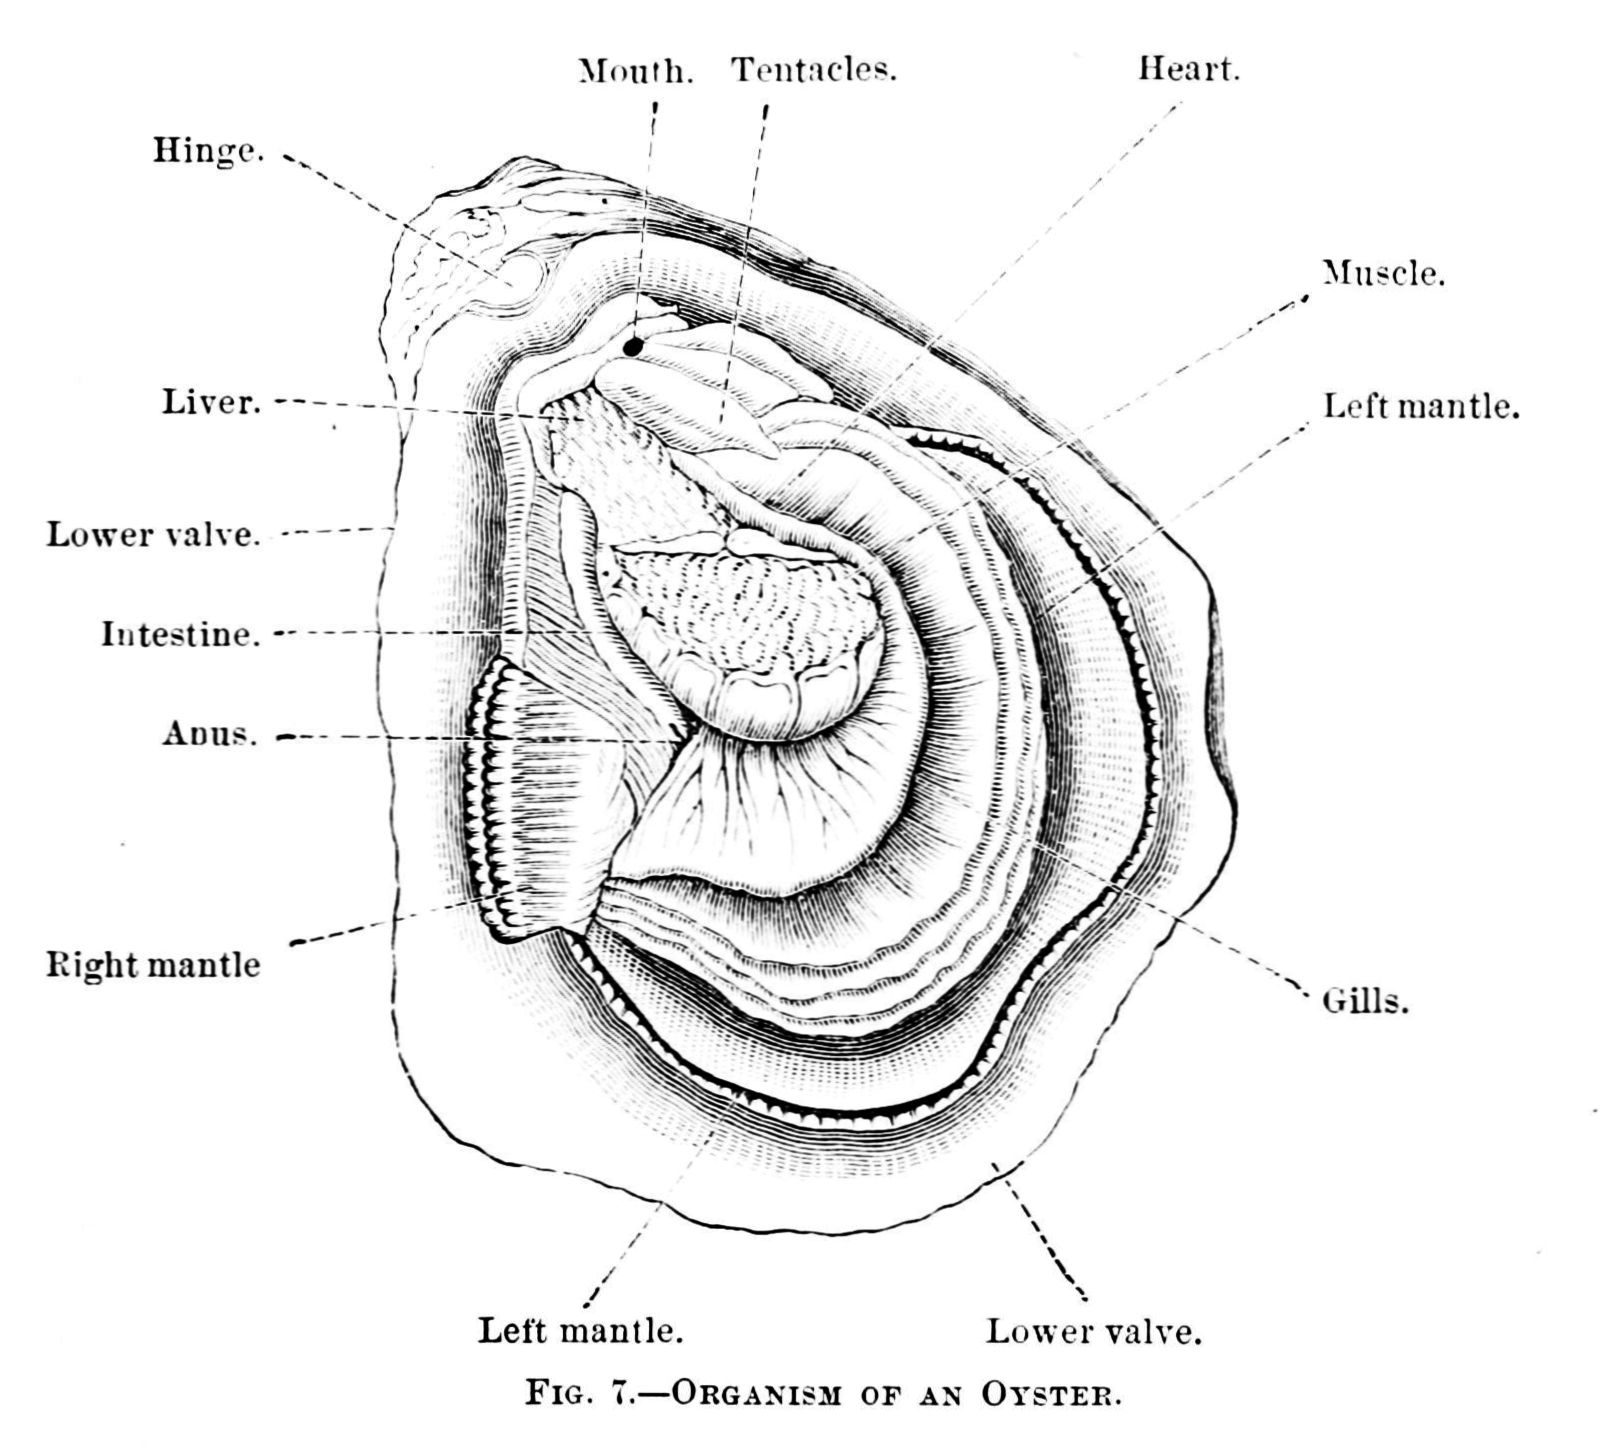 File:PSM V06 D025 Organism of an oyster.jpg - Wikimedia Commons